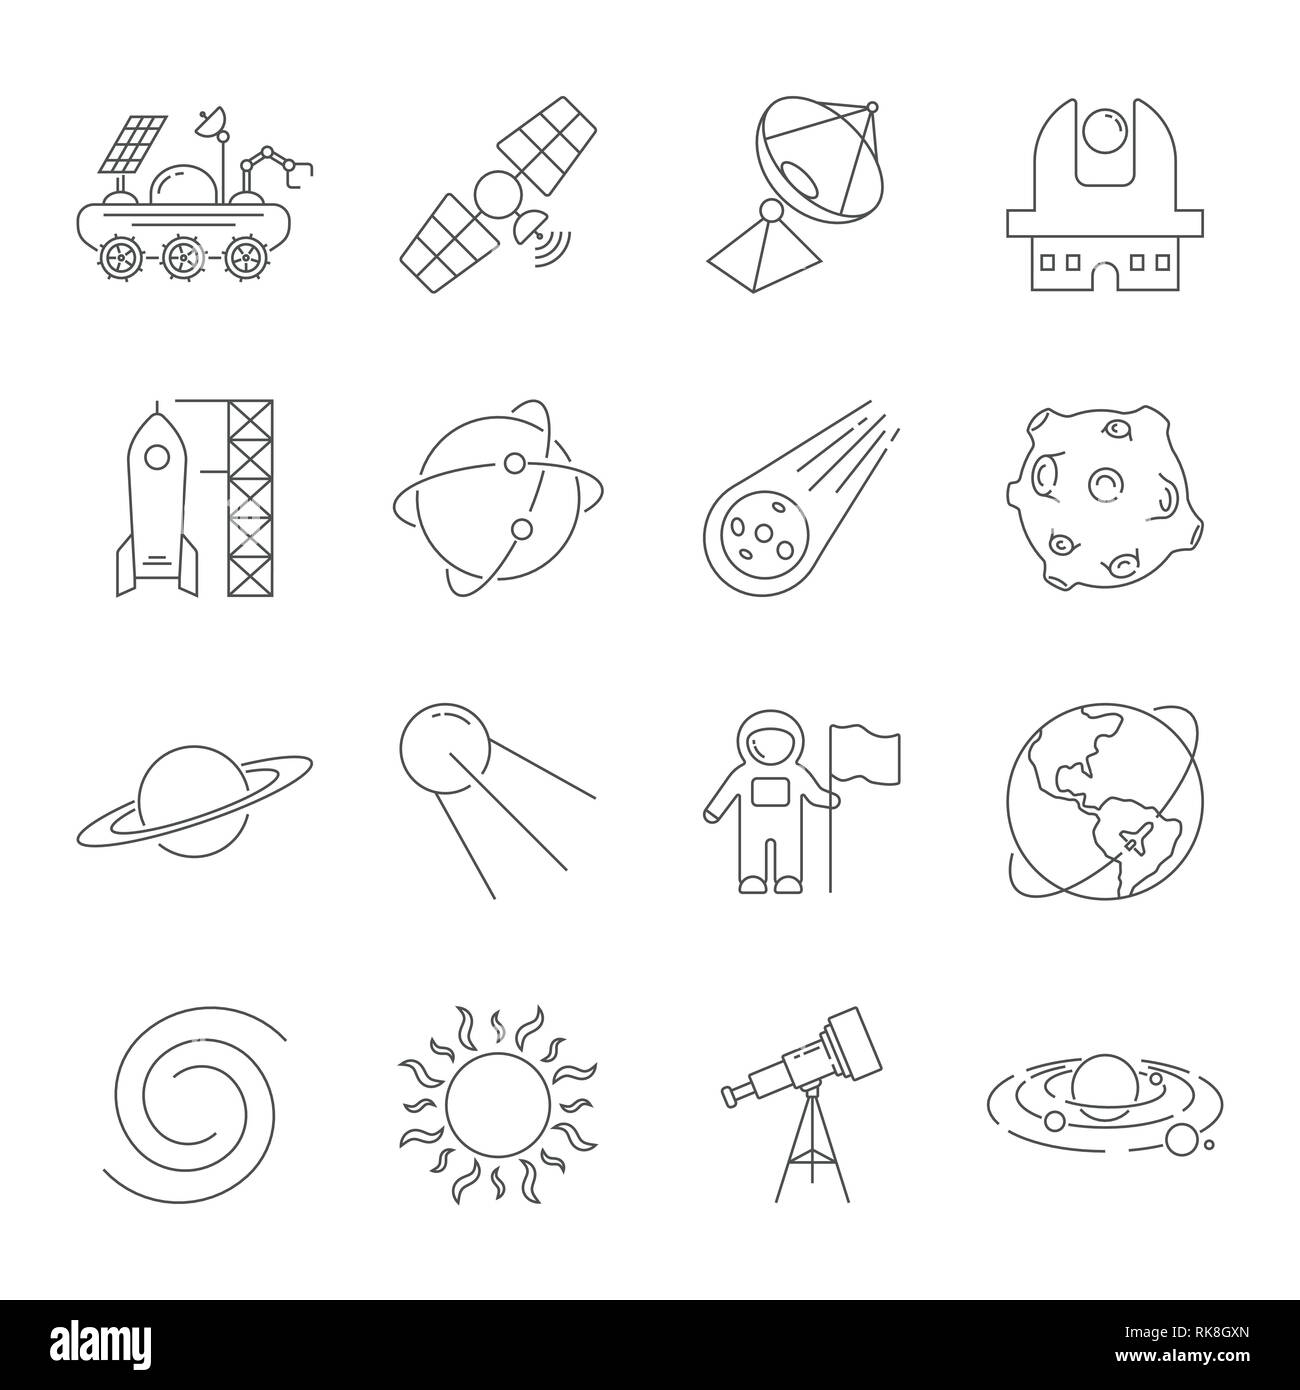 Simple Set of Space Related Vector Line Icons. Contains such Icons as Observatory, Planet Earth, Asteroid, Astronaft, Saturn, Moon, Moon Rover, Solar Stock Vector